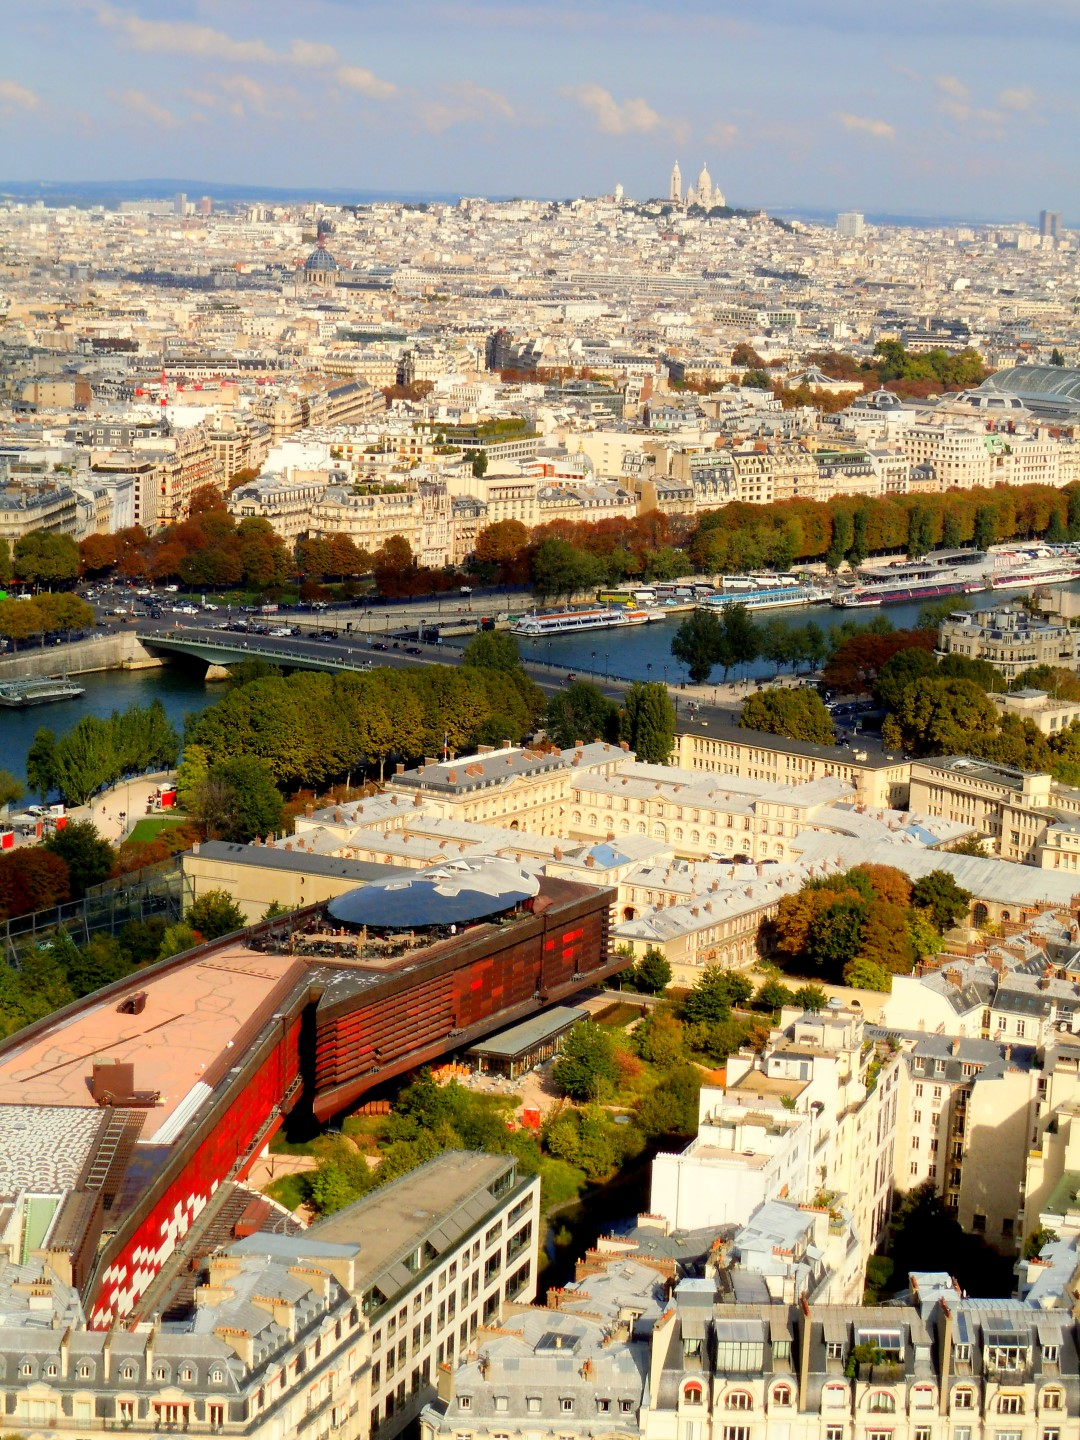 Eiffel Tower view to Montmartre with the seine in the foreground